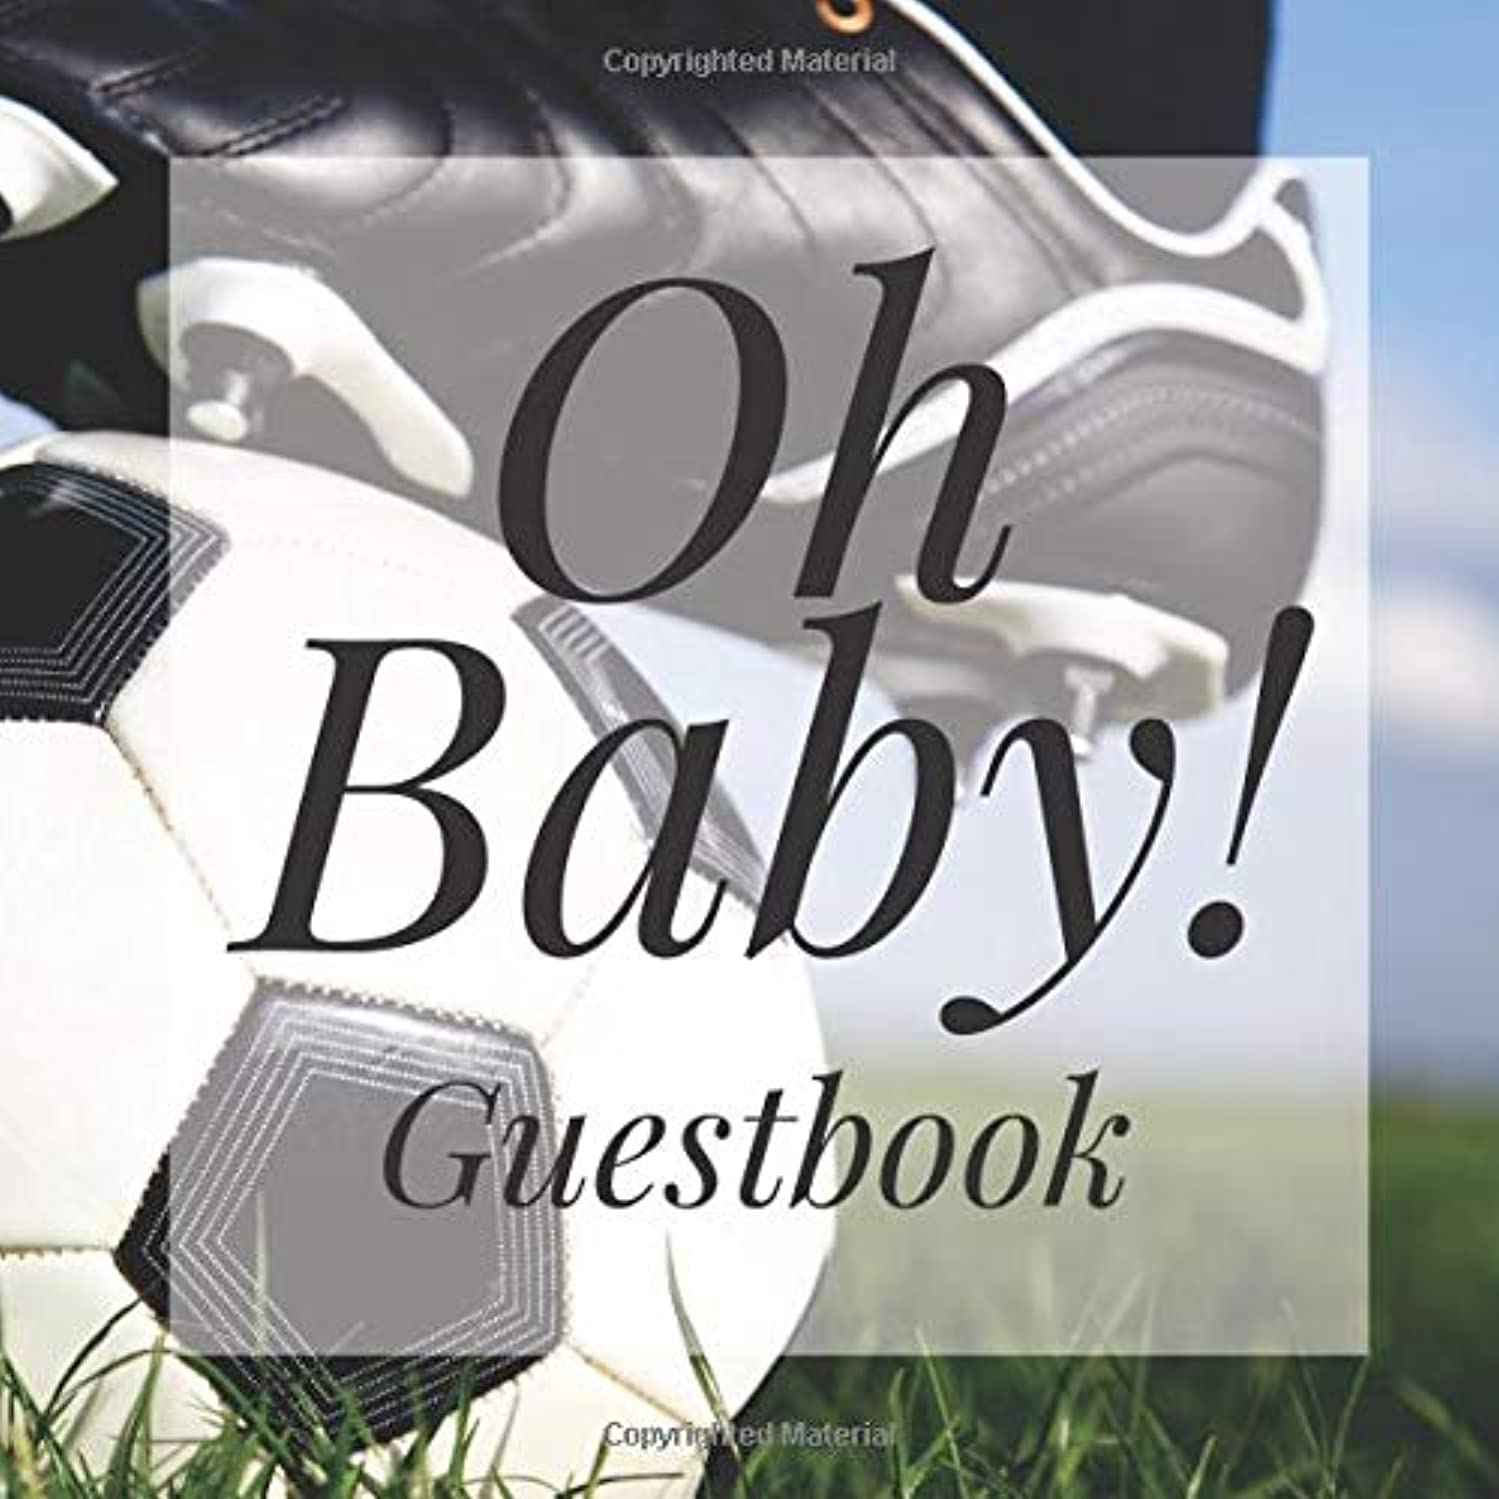 Oh Baby! Guestbook: Soccer Football Sports Shower Signing Sign In Book, Welcome New Baby Girl with Gift Log Recorder, Address Lines, Prediction, Advice Wishes, Photo Milestones